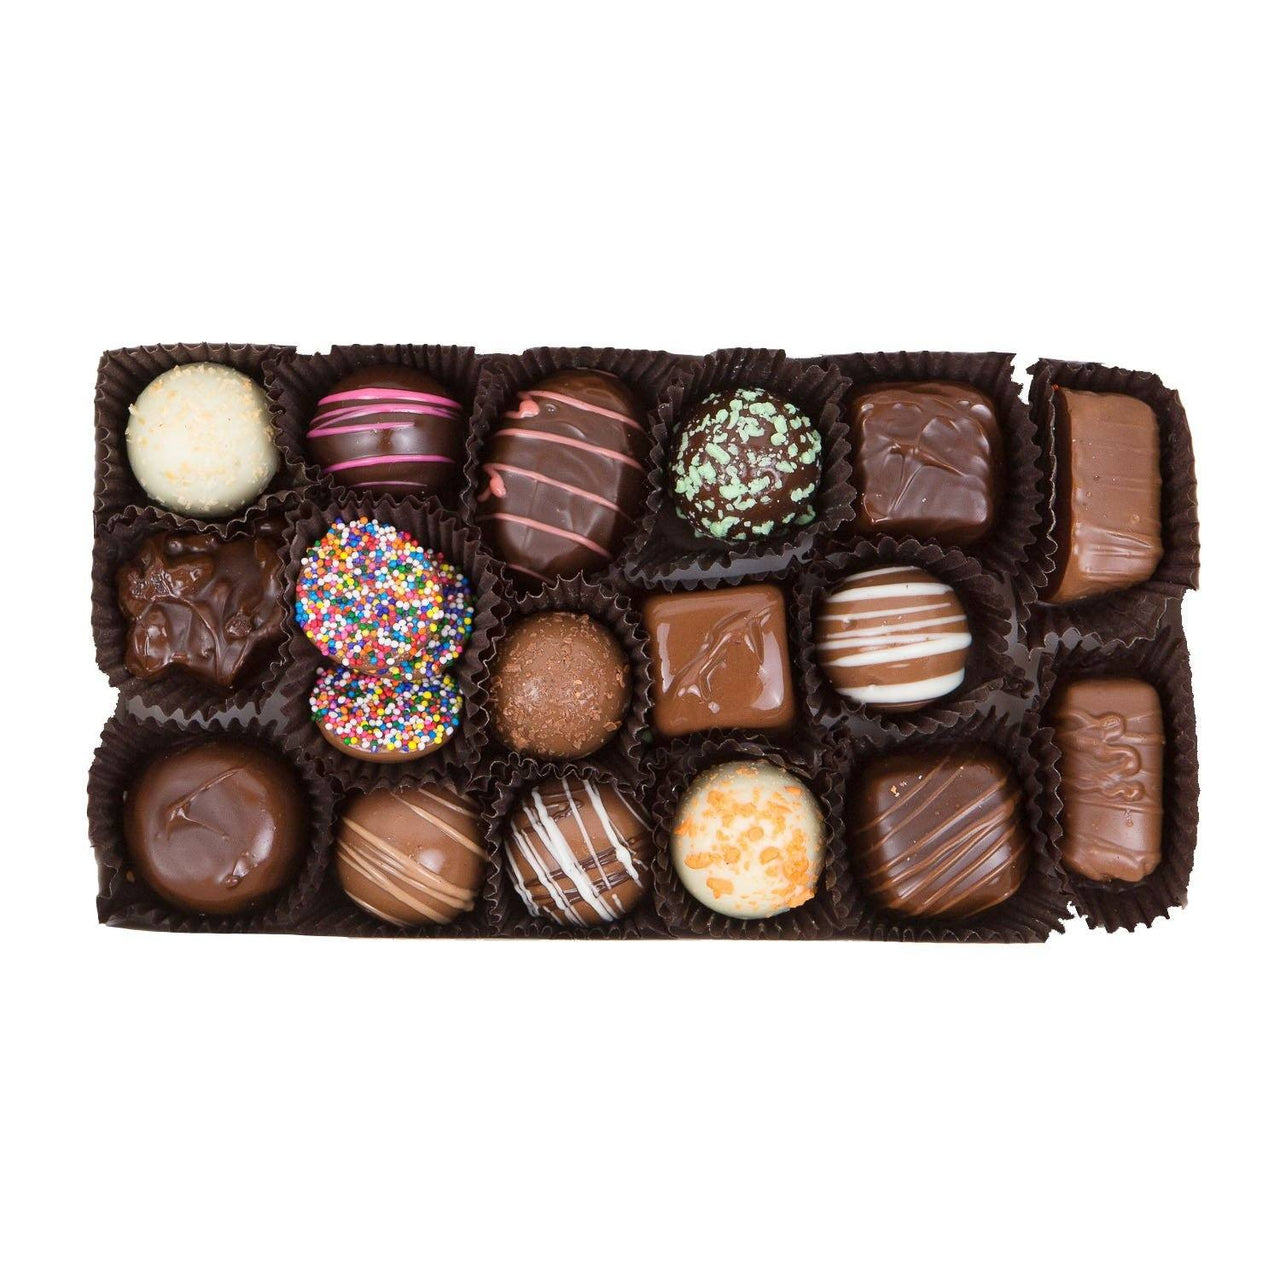 Secret Santa Gifts - Chocolate Assortment Gift Box - Jackie's Chocolate (4336368287859)